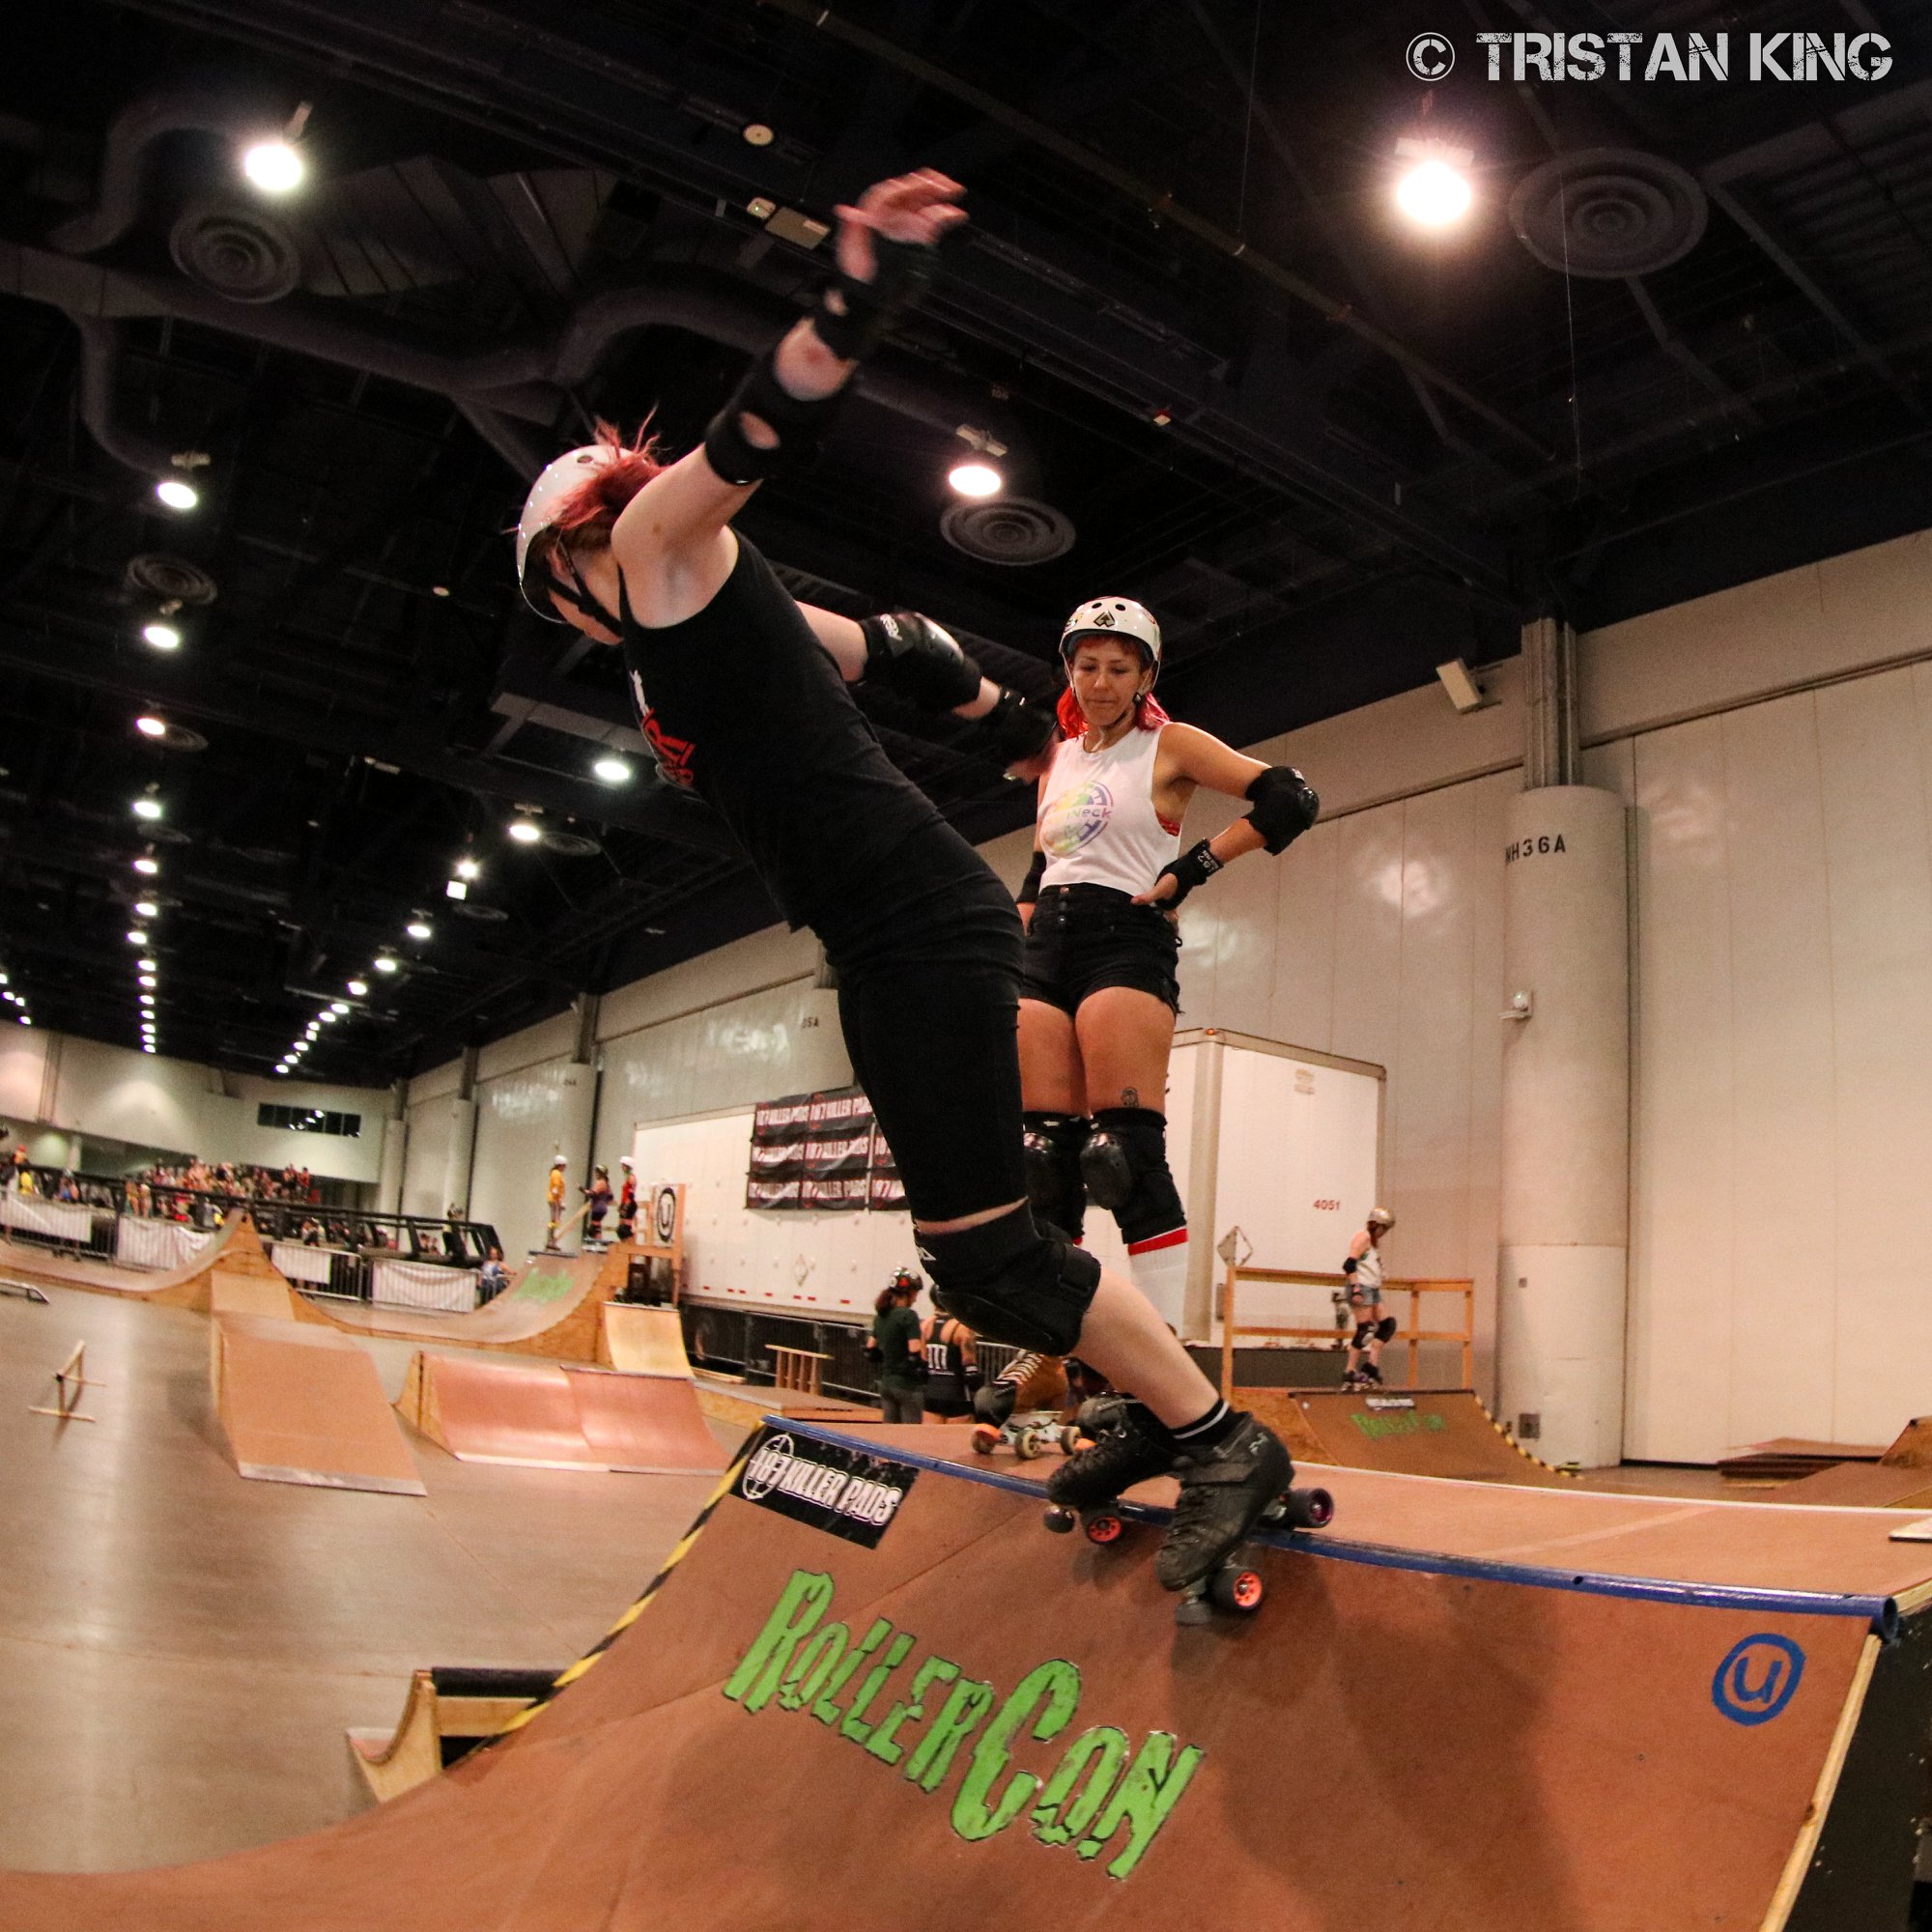 RC19 skatepark III by Tristan King